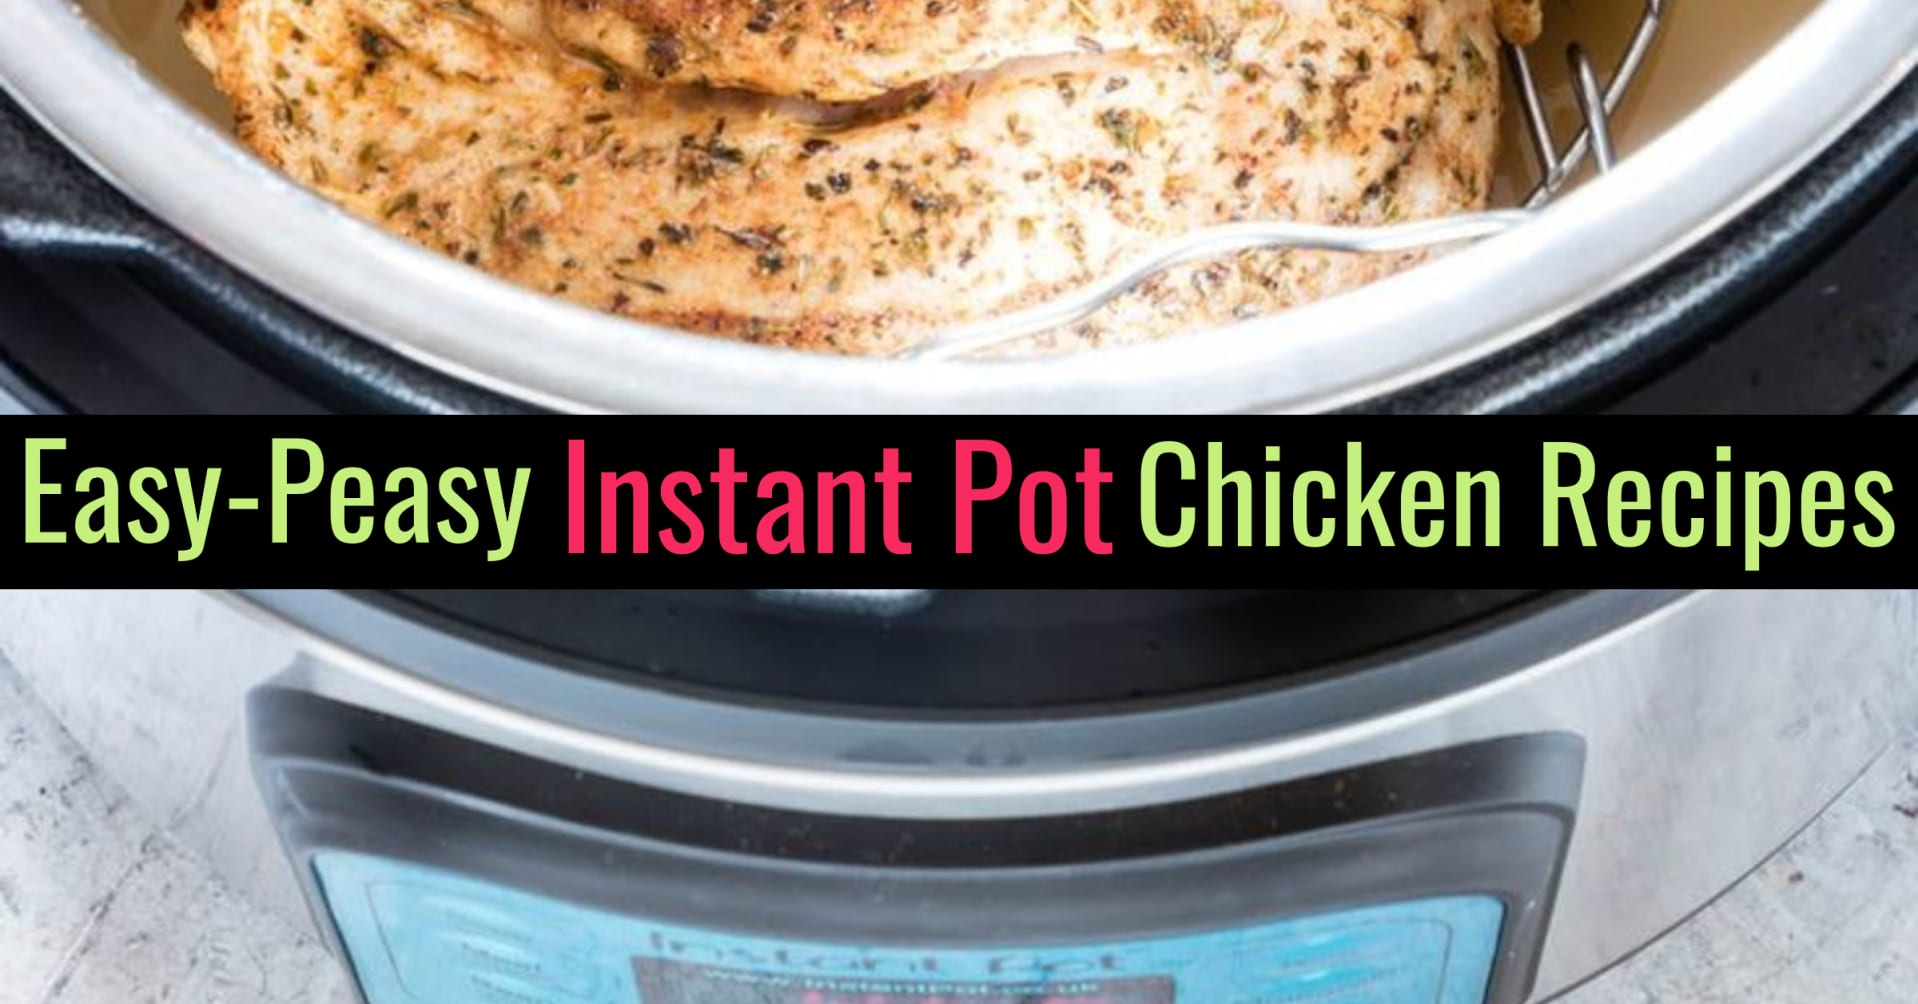 Easy Instant Pot Chicken Recipes for Beginners